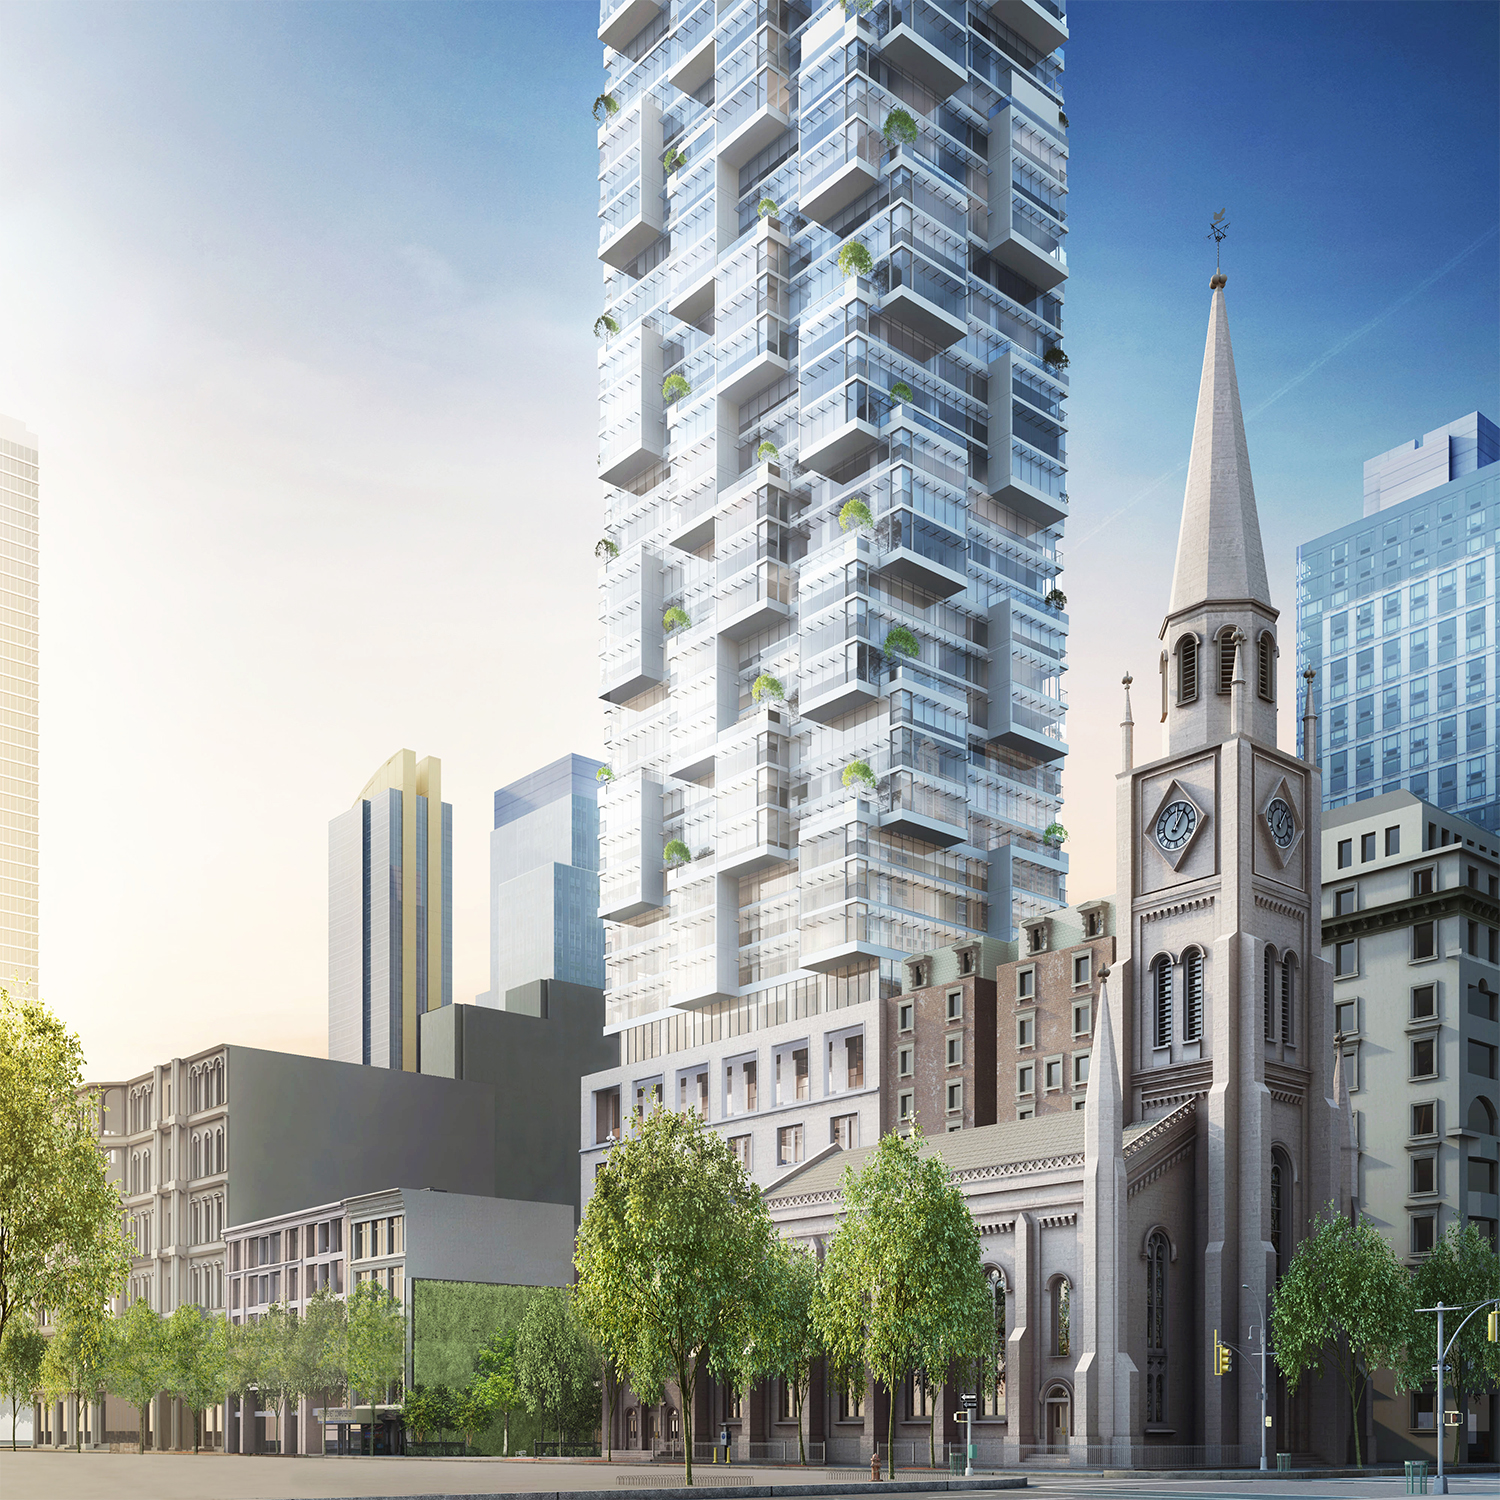 Rendering of the Moshe Safdie-designed tower as seen from the corner of Fifth Avenue and 29th Street.